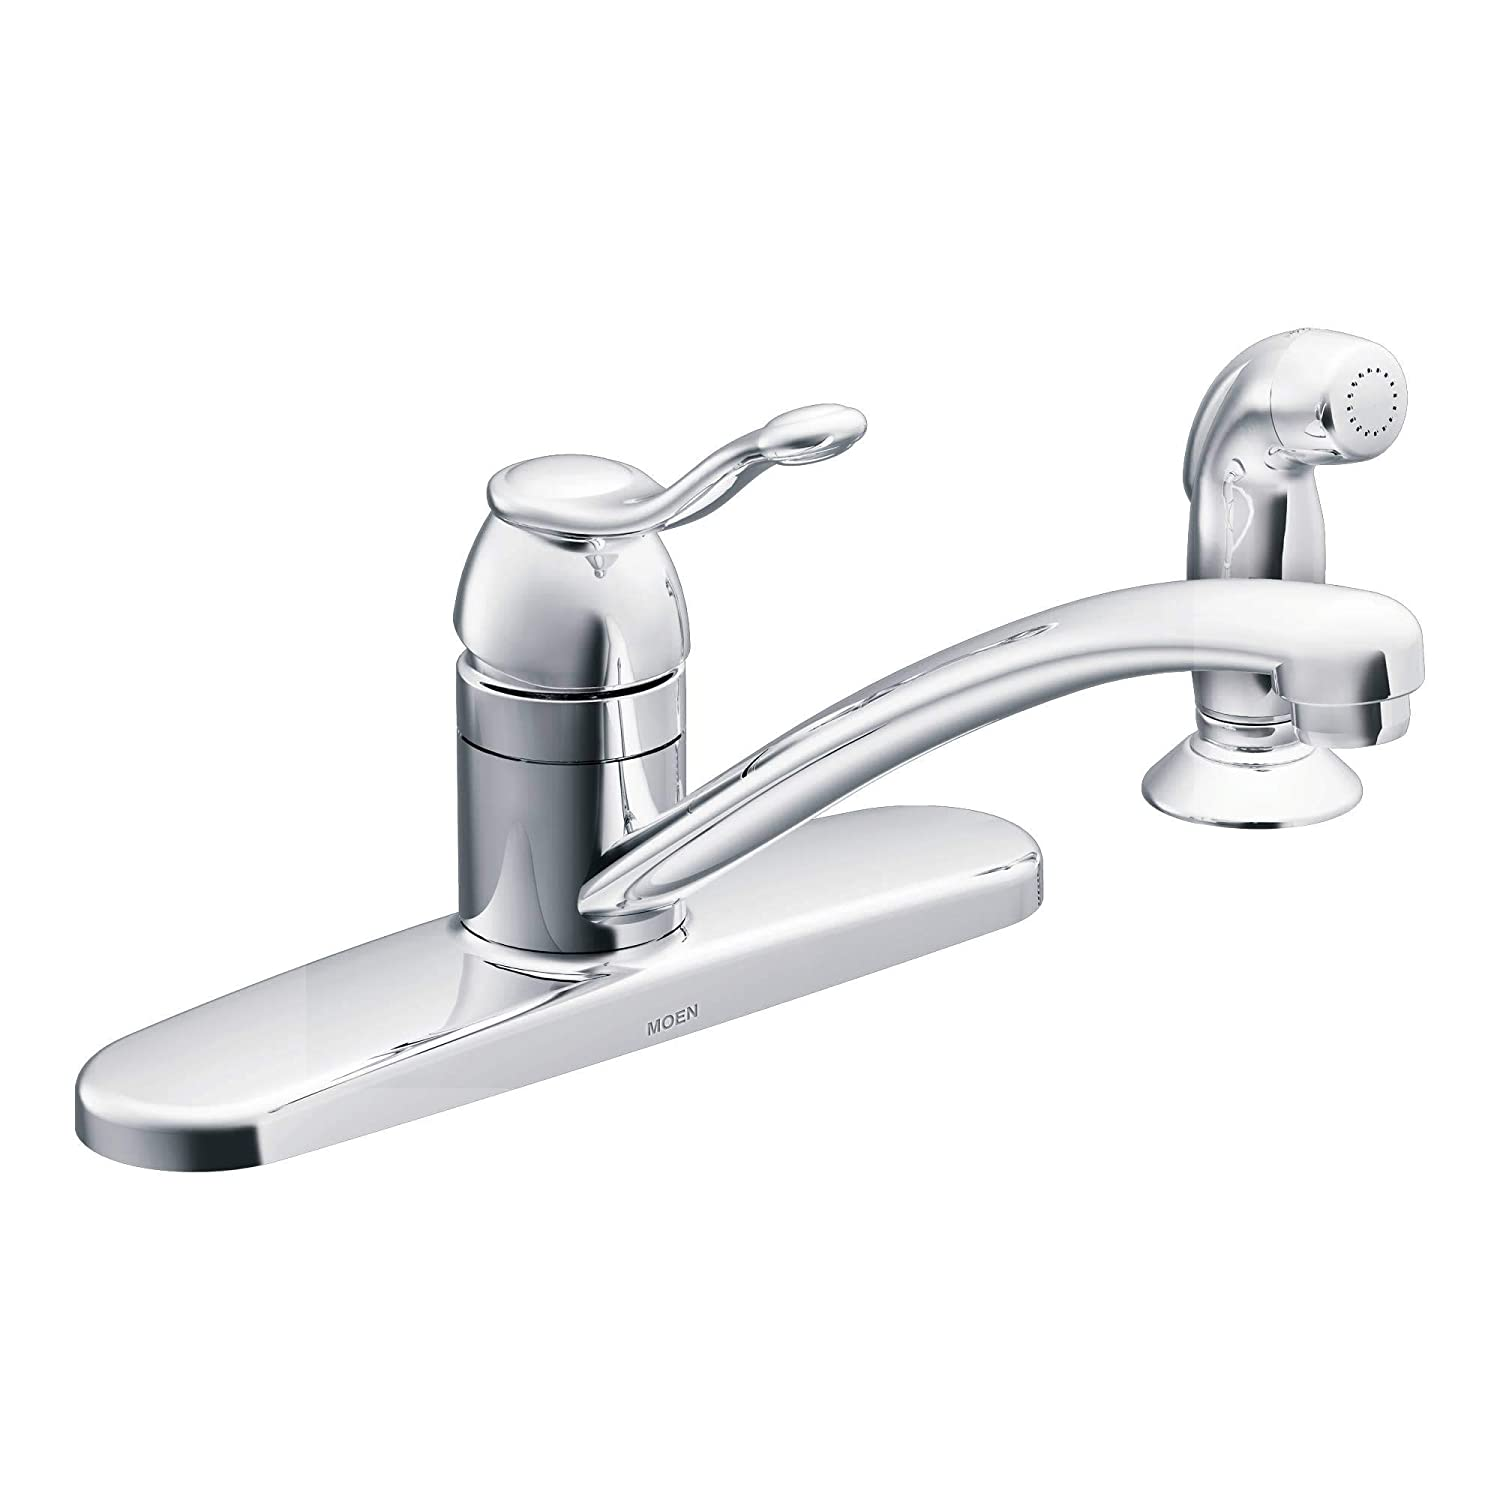 Moen CA87016 Kitchen Faucet with Side Spray from the Adler Collection, Chrome